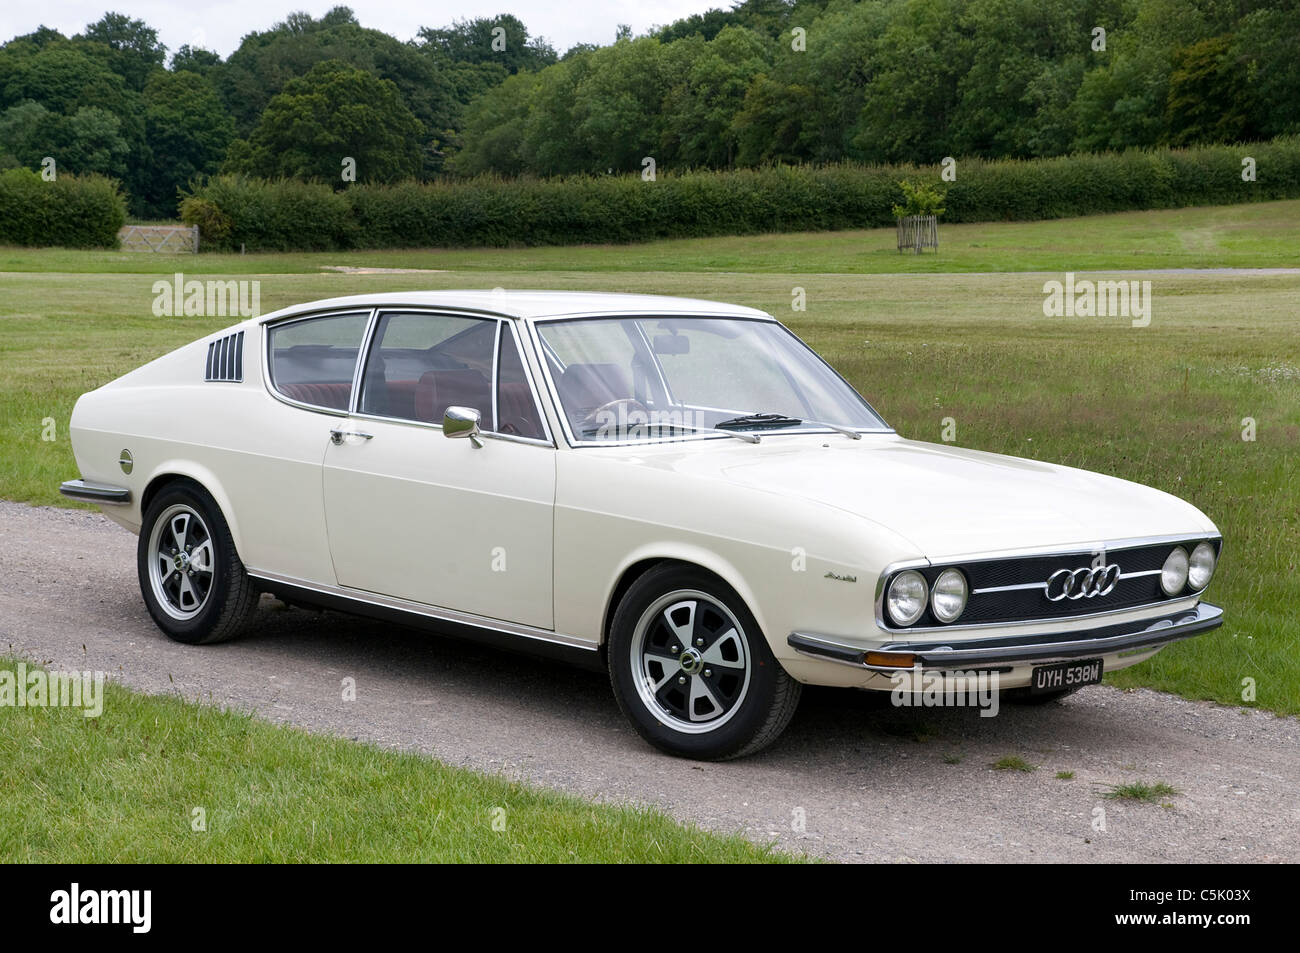 audi 100 coupe s 1973 stock photo royalty free image 37911214 alamy